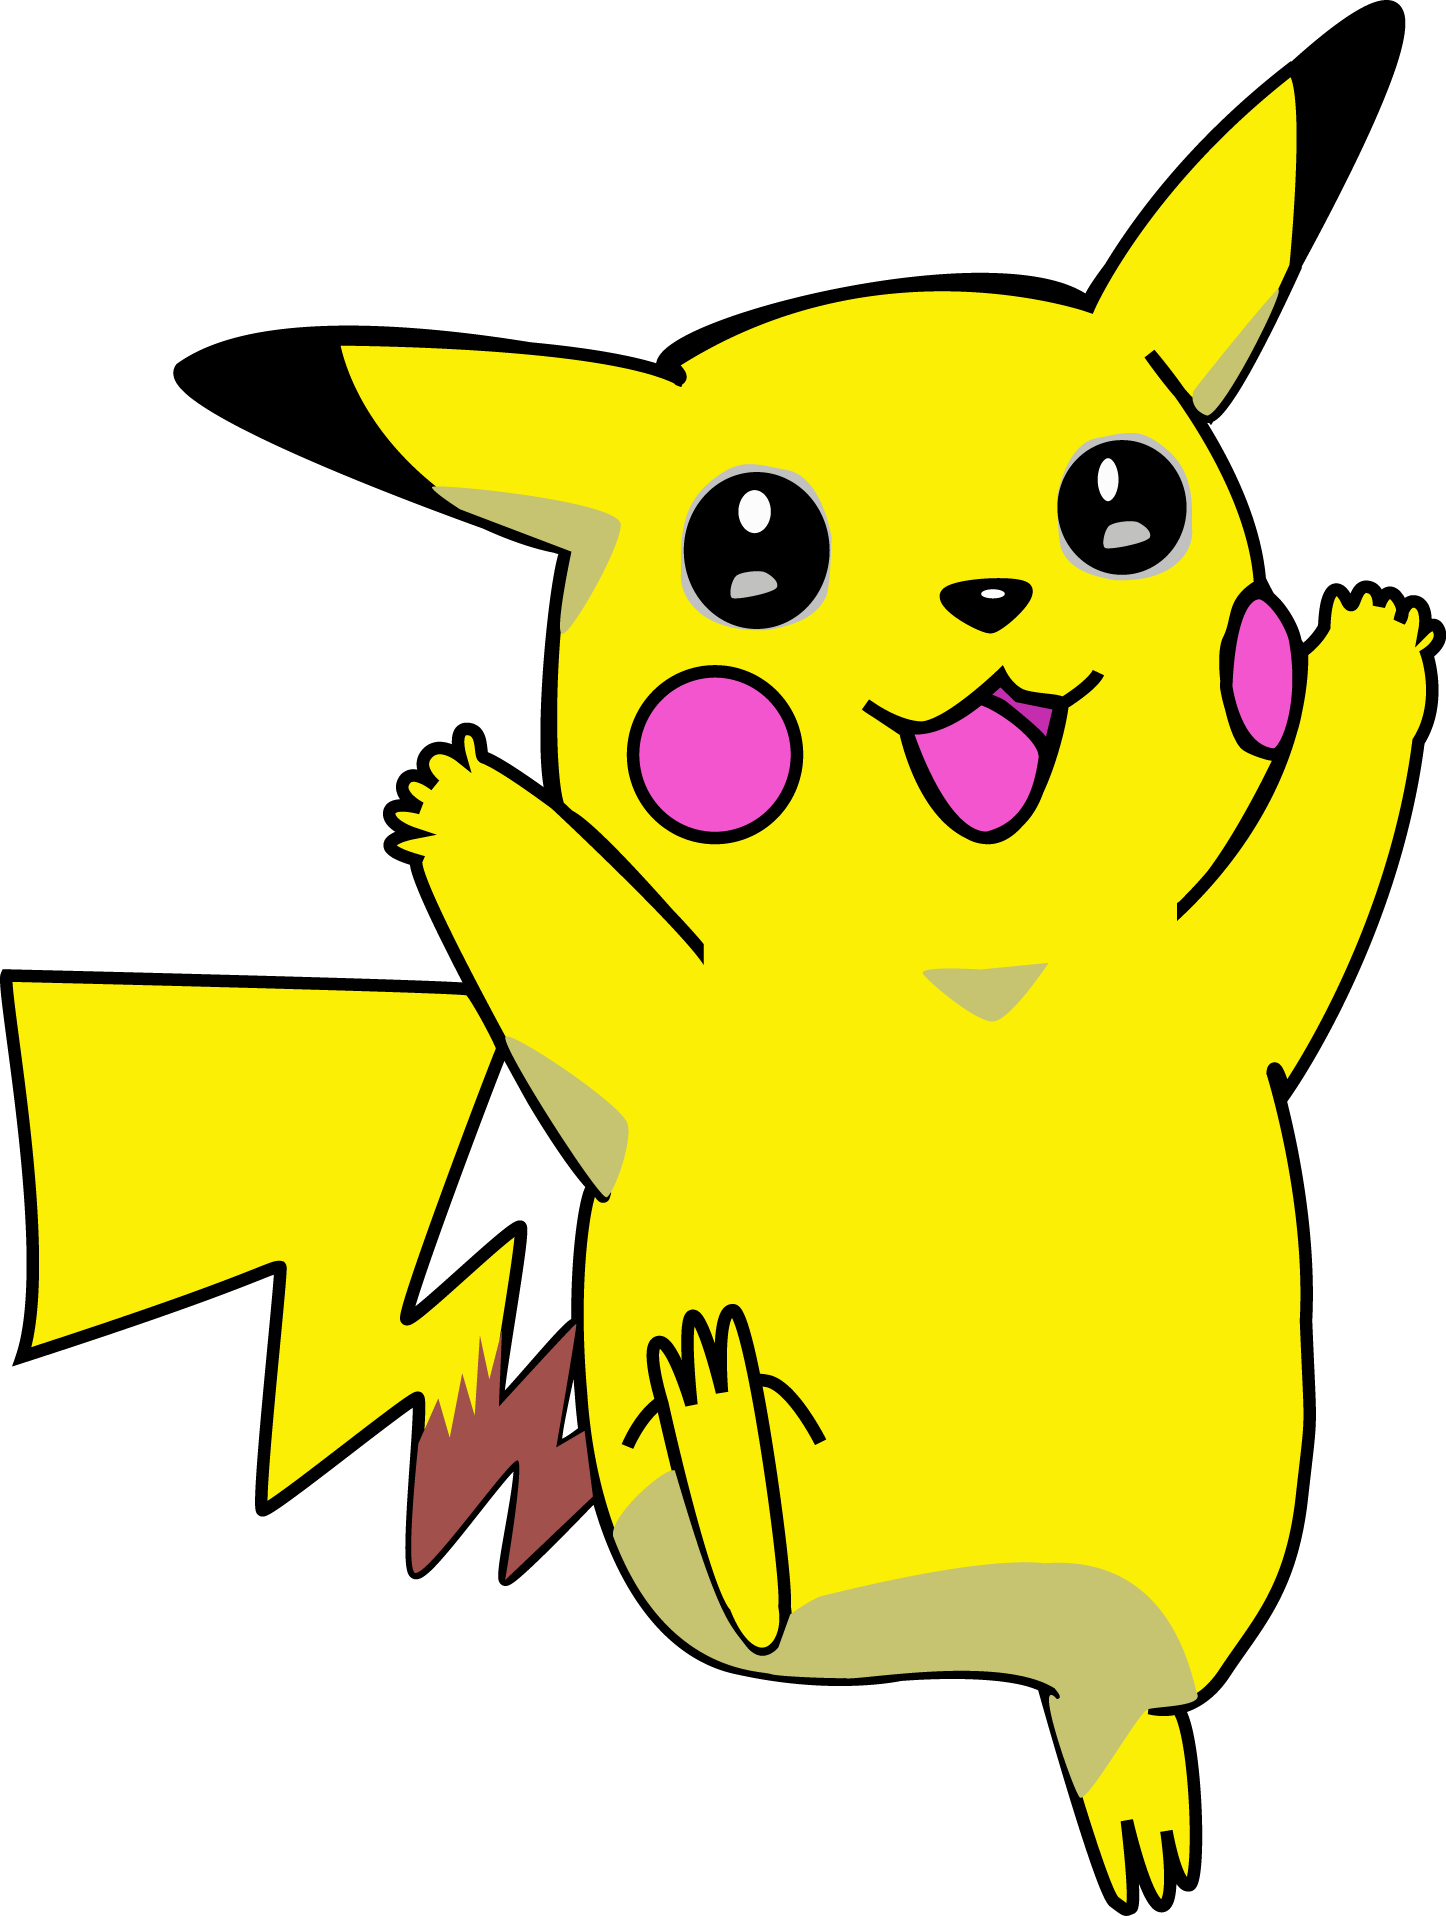 Pikachu Free Vector image #17358